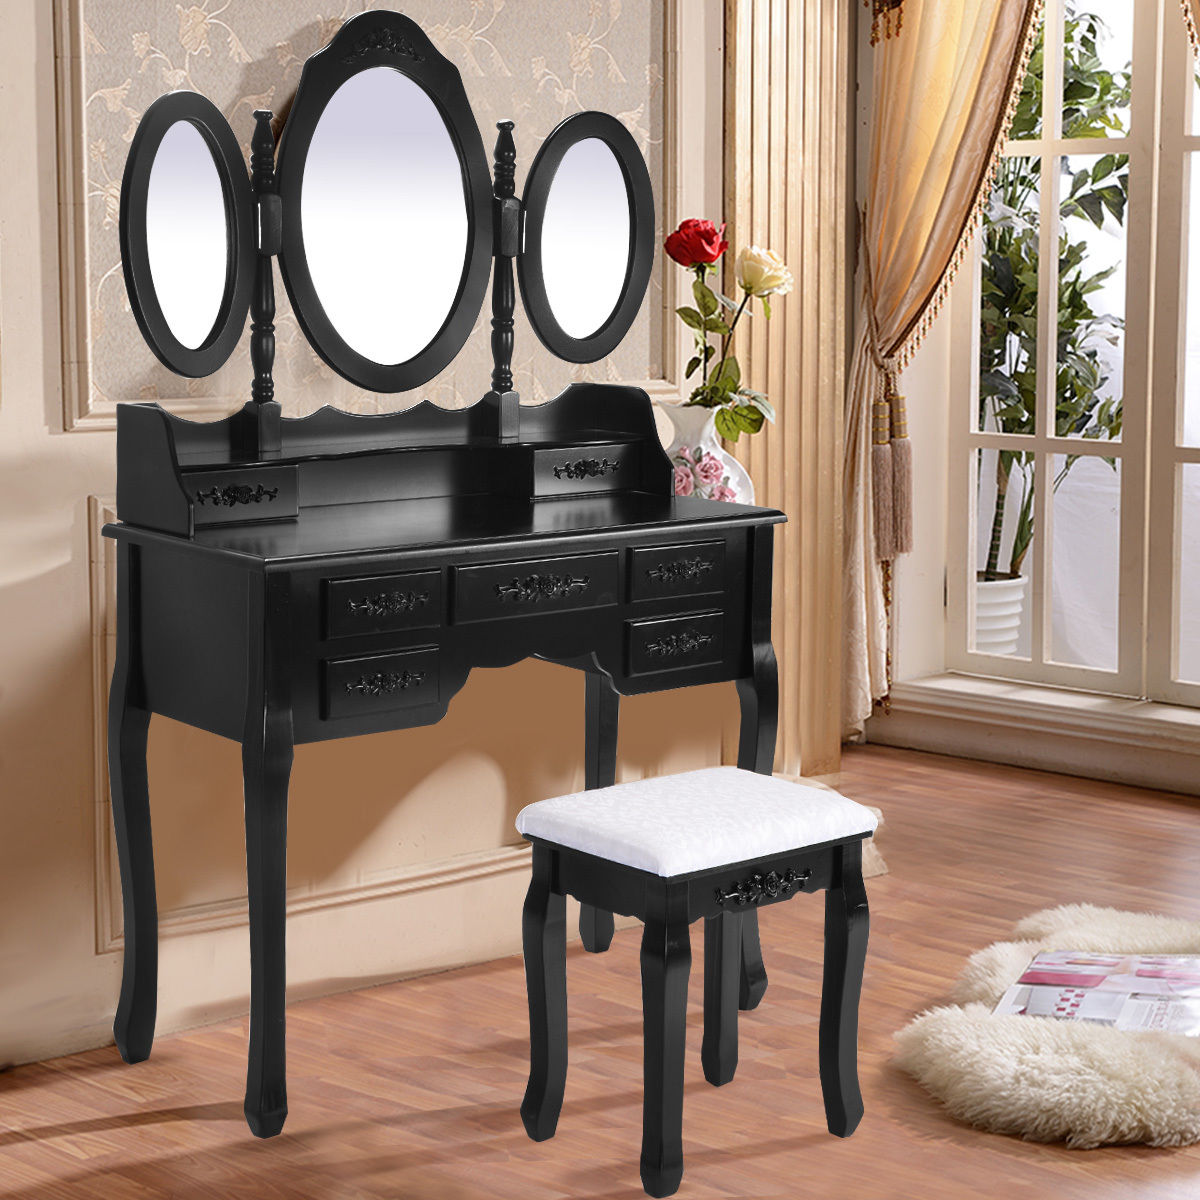 Black / White Vanity Makeup Dressing Table w/ Tri Folding Mirror + 7 Drawers